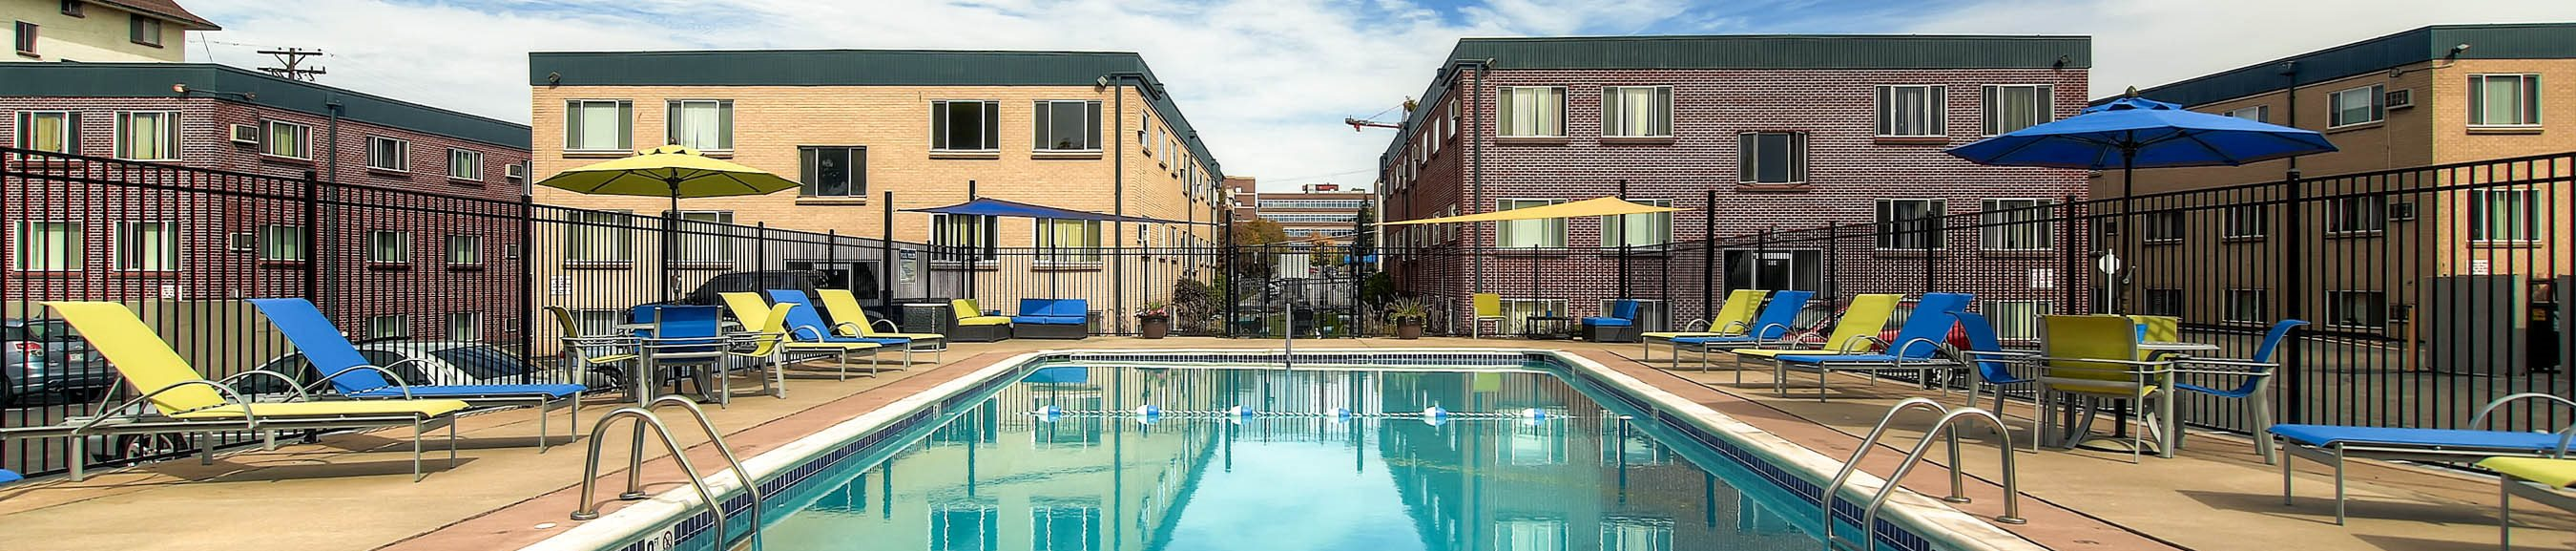 Off Broadway Flats Pool and Buildings